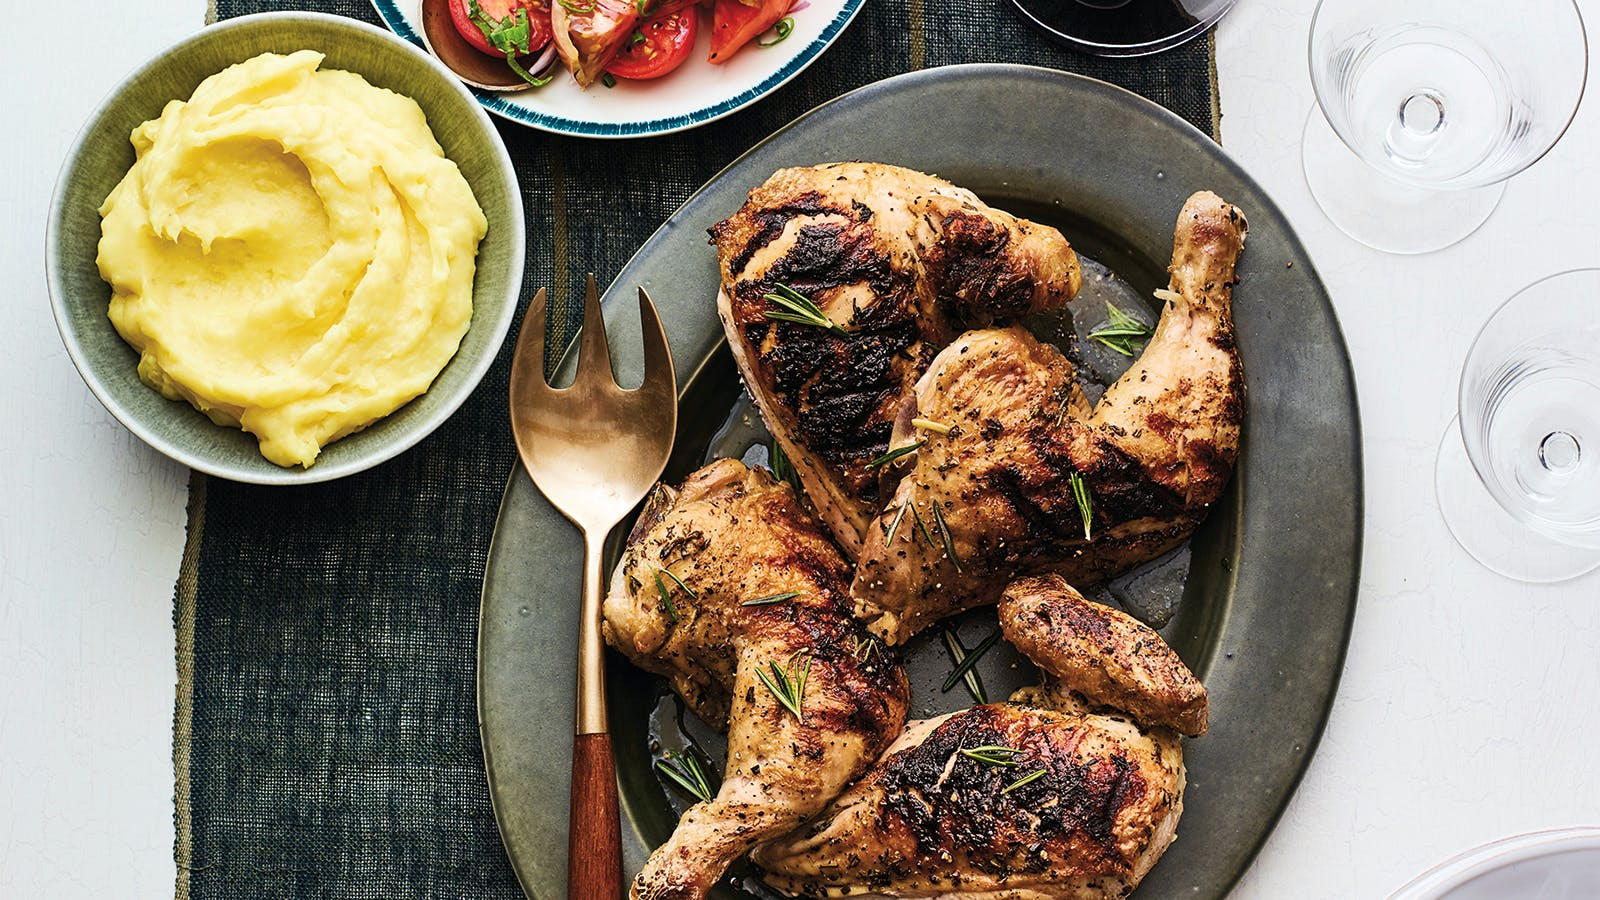 Dining Tip: José Andrés' Spice-Marinated Chicken